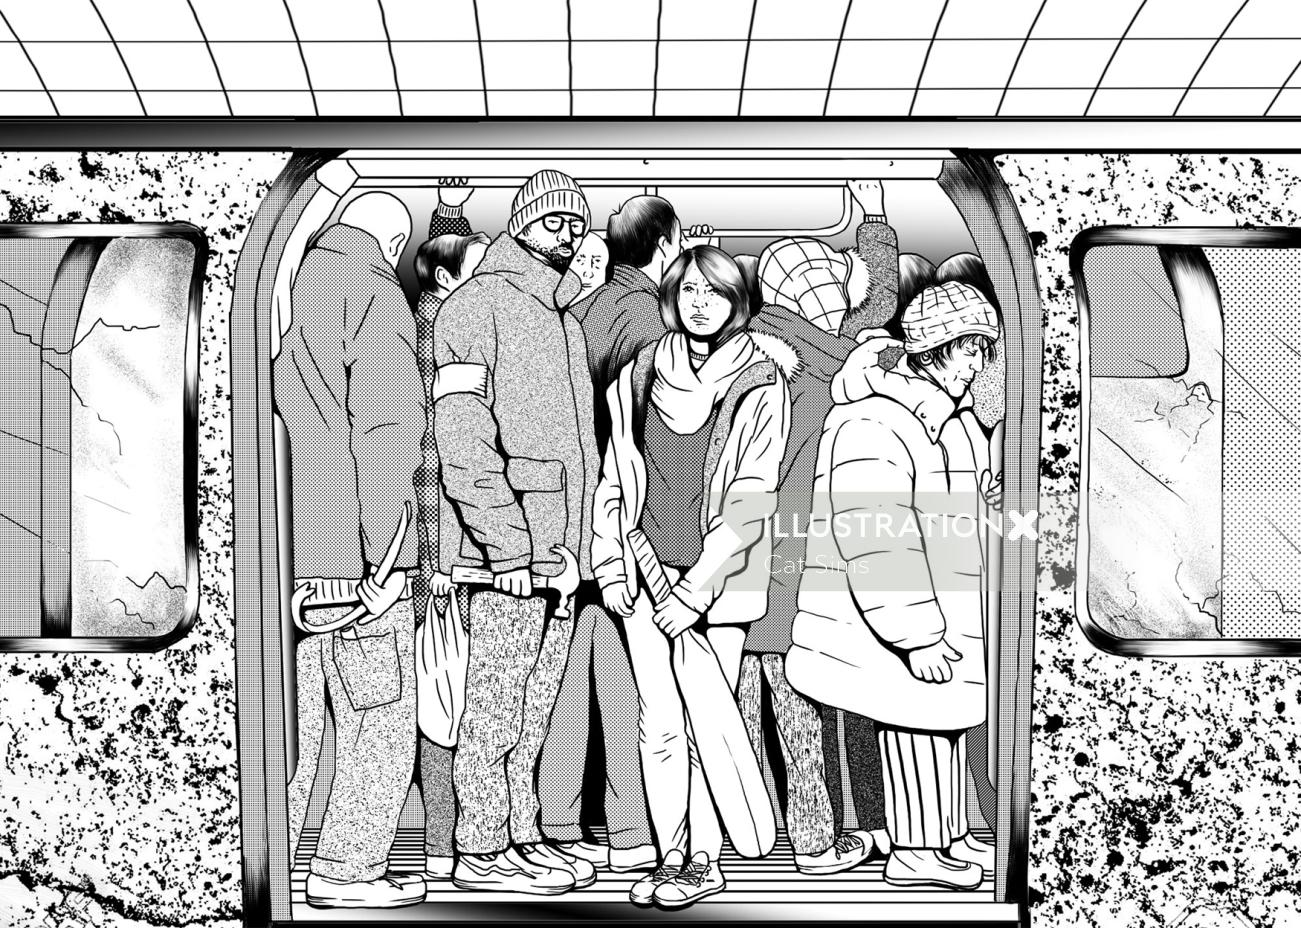 Black & White illustration of crowd in metro